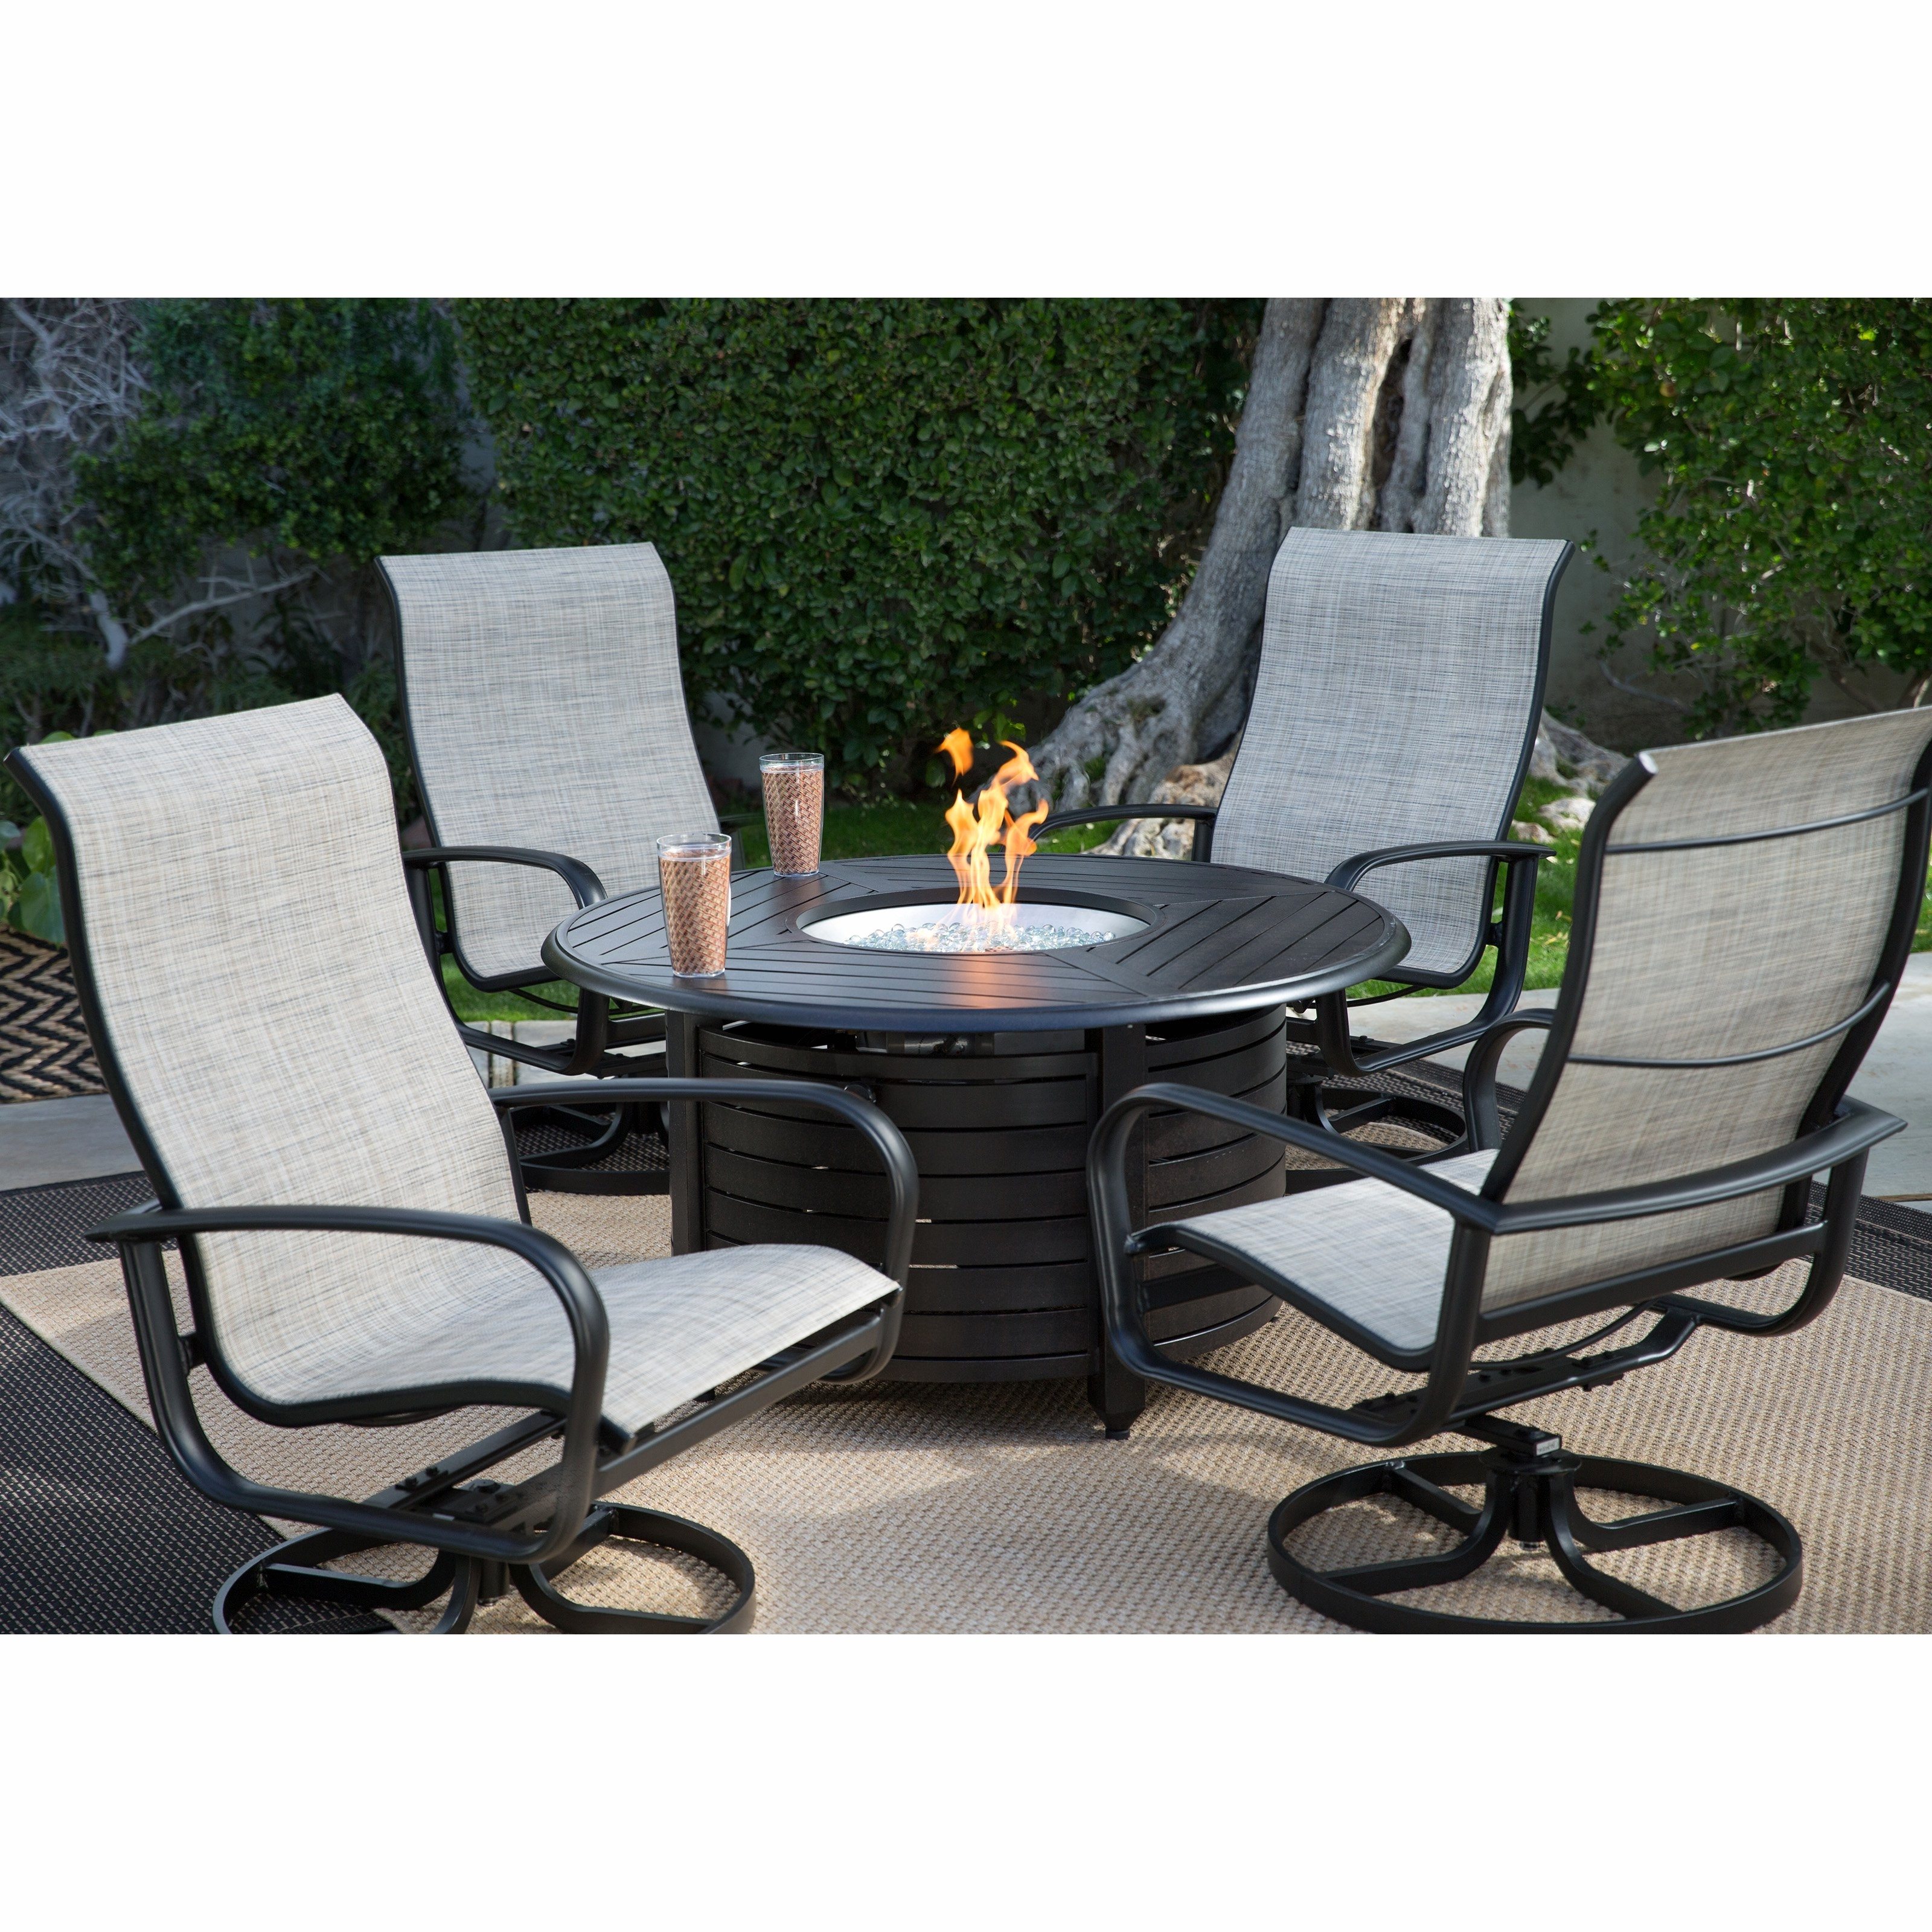 Trendy Patio Furniture With Gas Fire Pit Elegant Conversation Sets Outdoor Intended For Patio Conversation Sets With Gas Fire Pit (View 15 of 15)